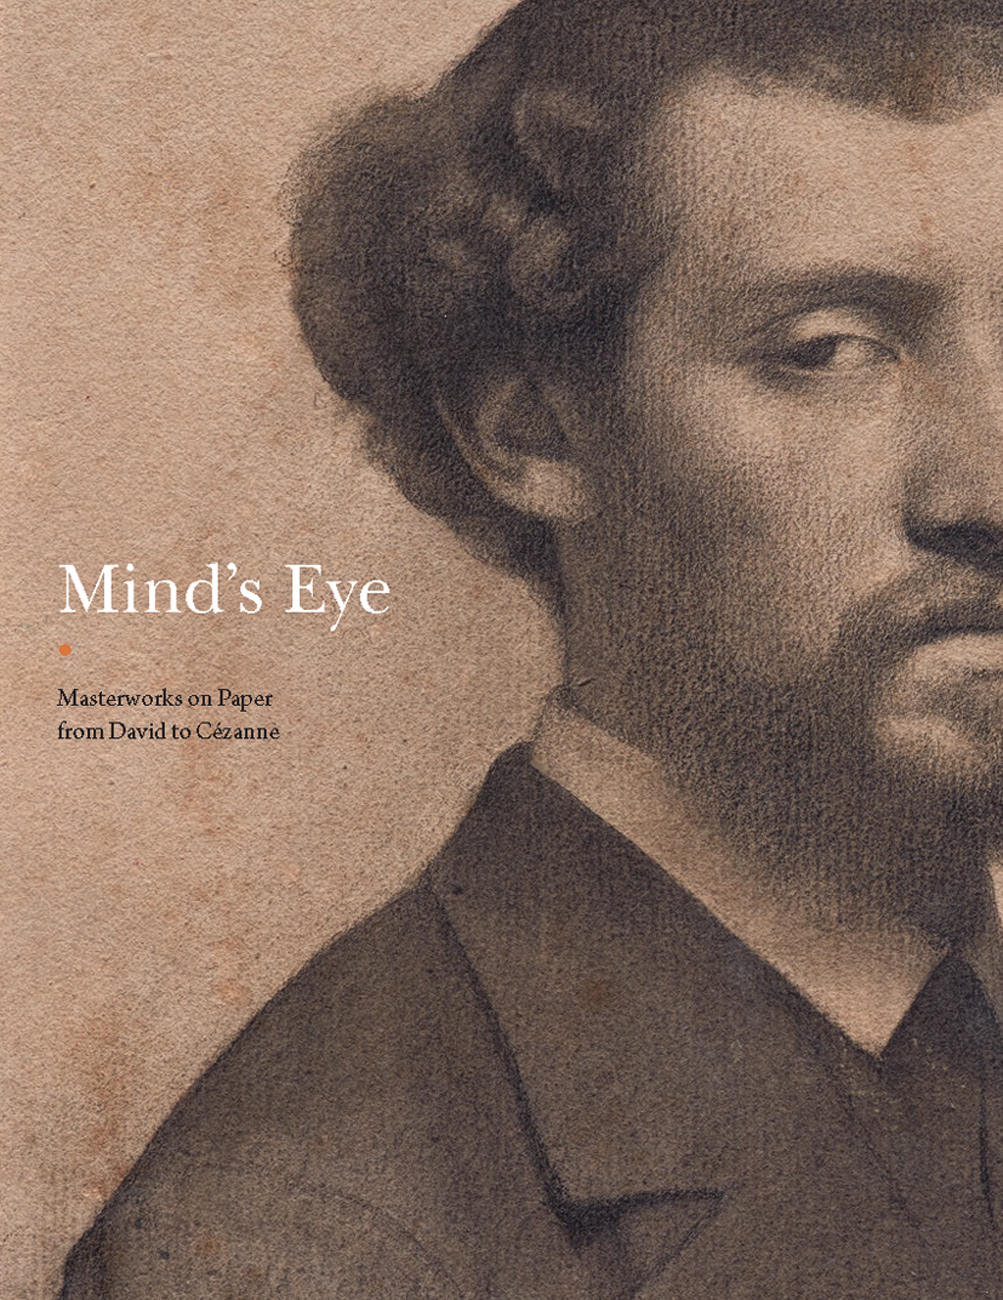 Mind's Eye: Masterworks on Paper from David to Cezanne